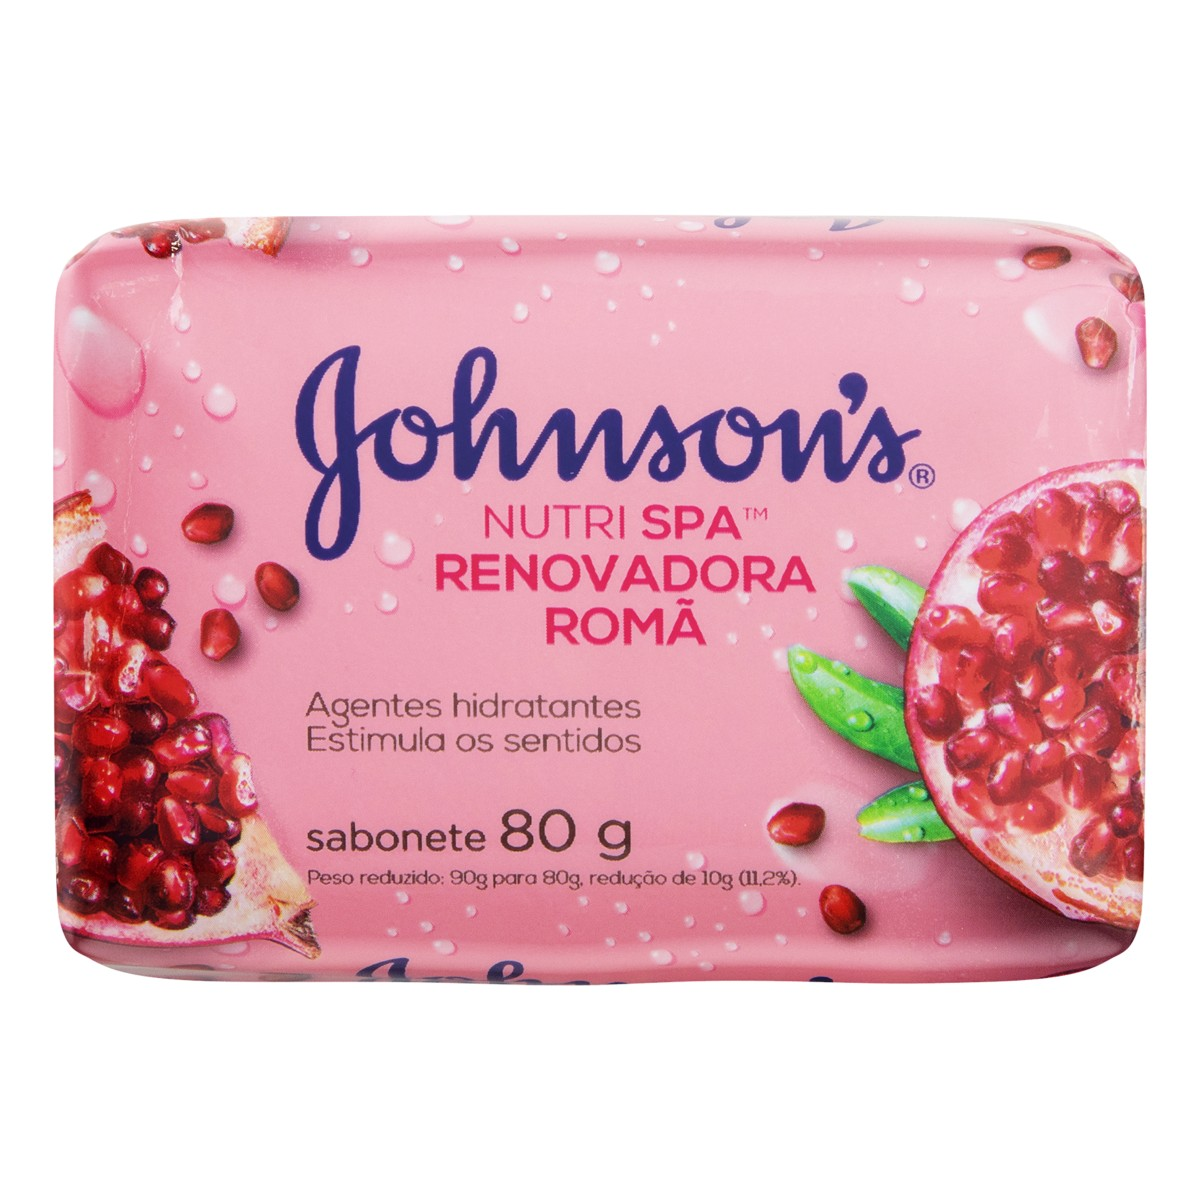 7891010247423 - SABONETE EM BARRA RENOVADORA ROMÃ JOHNSONS NUTRI SPA CARTUCHO 80G